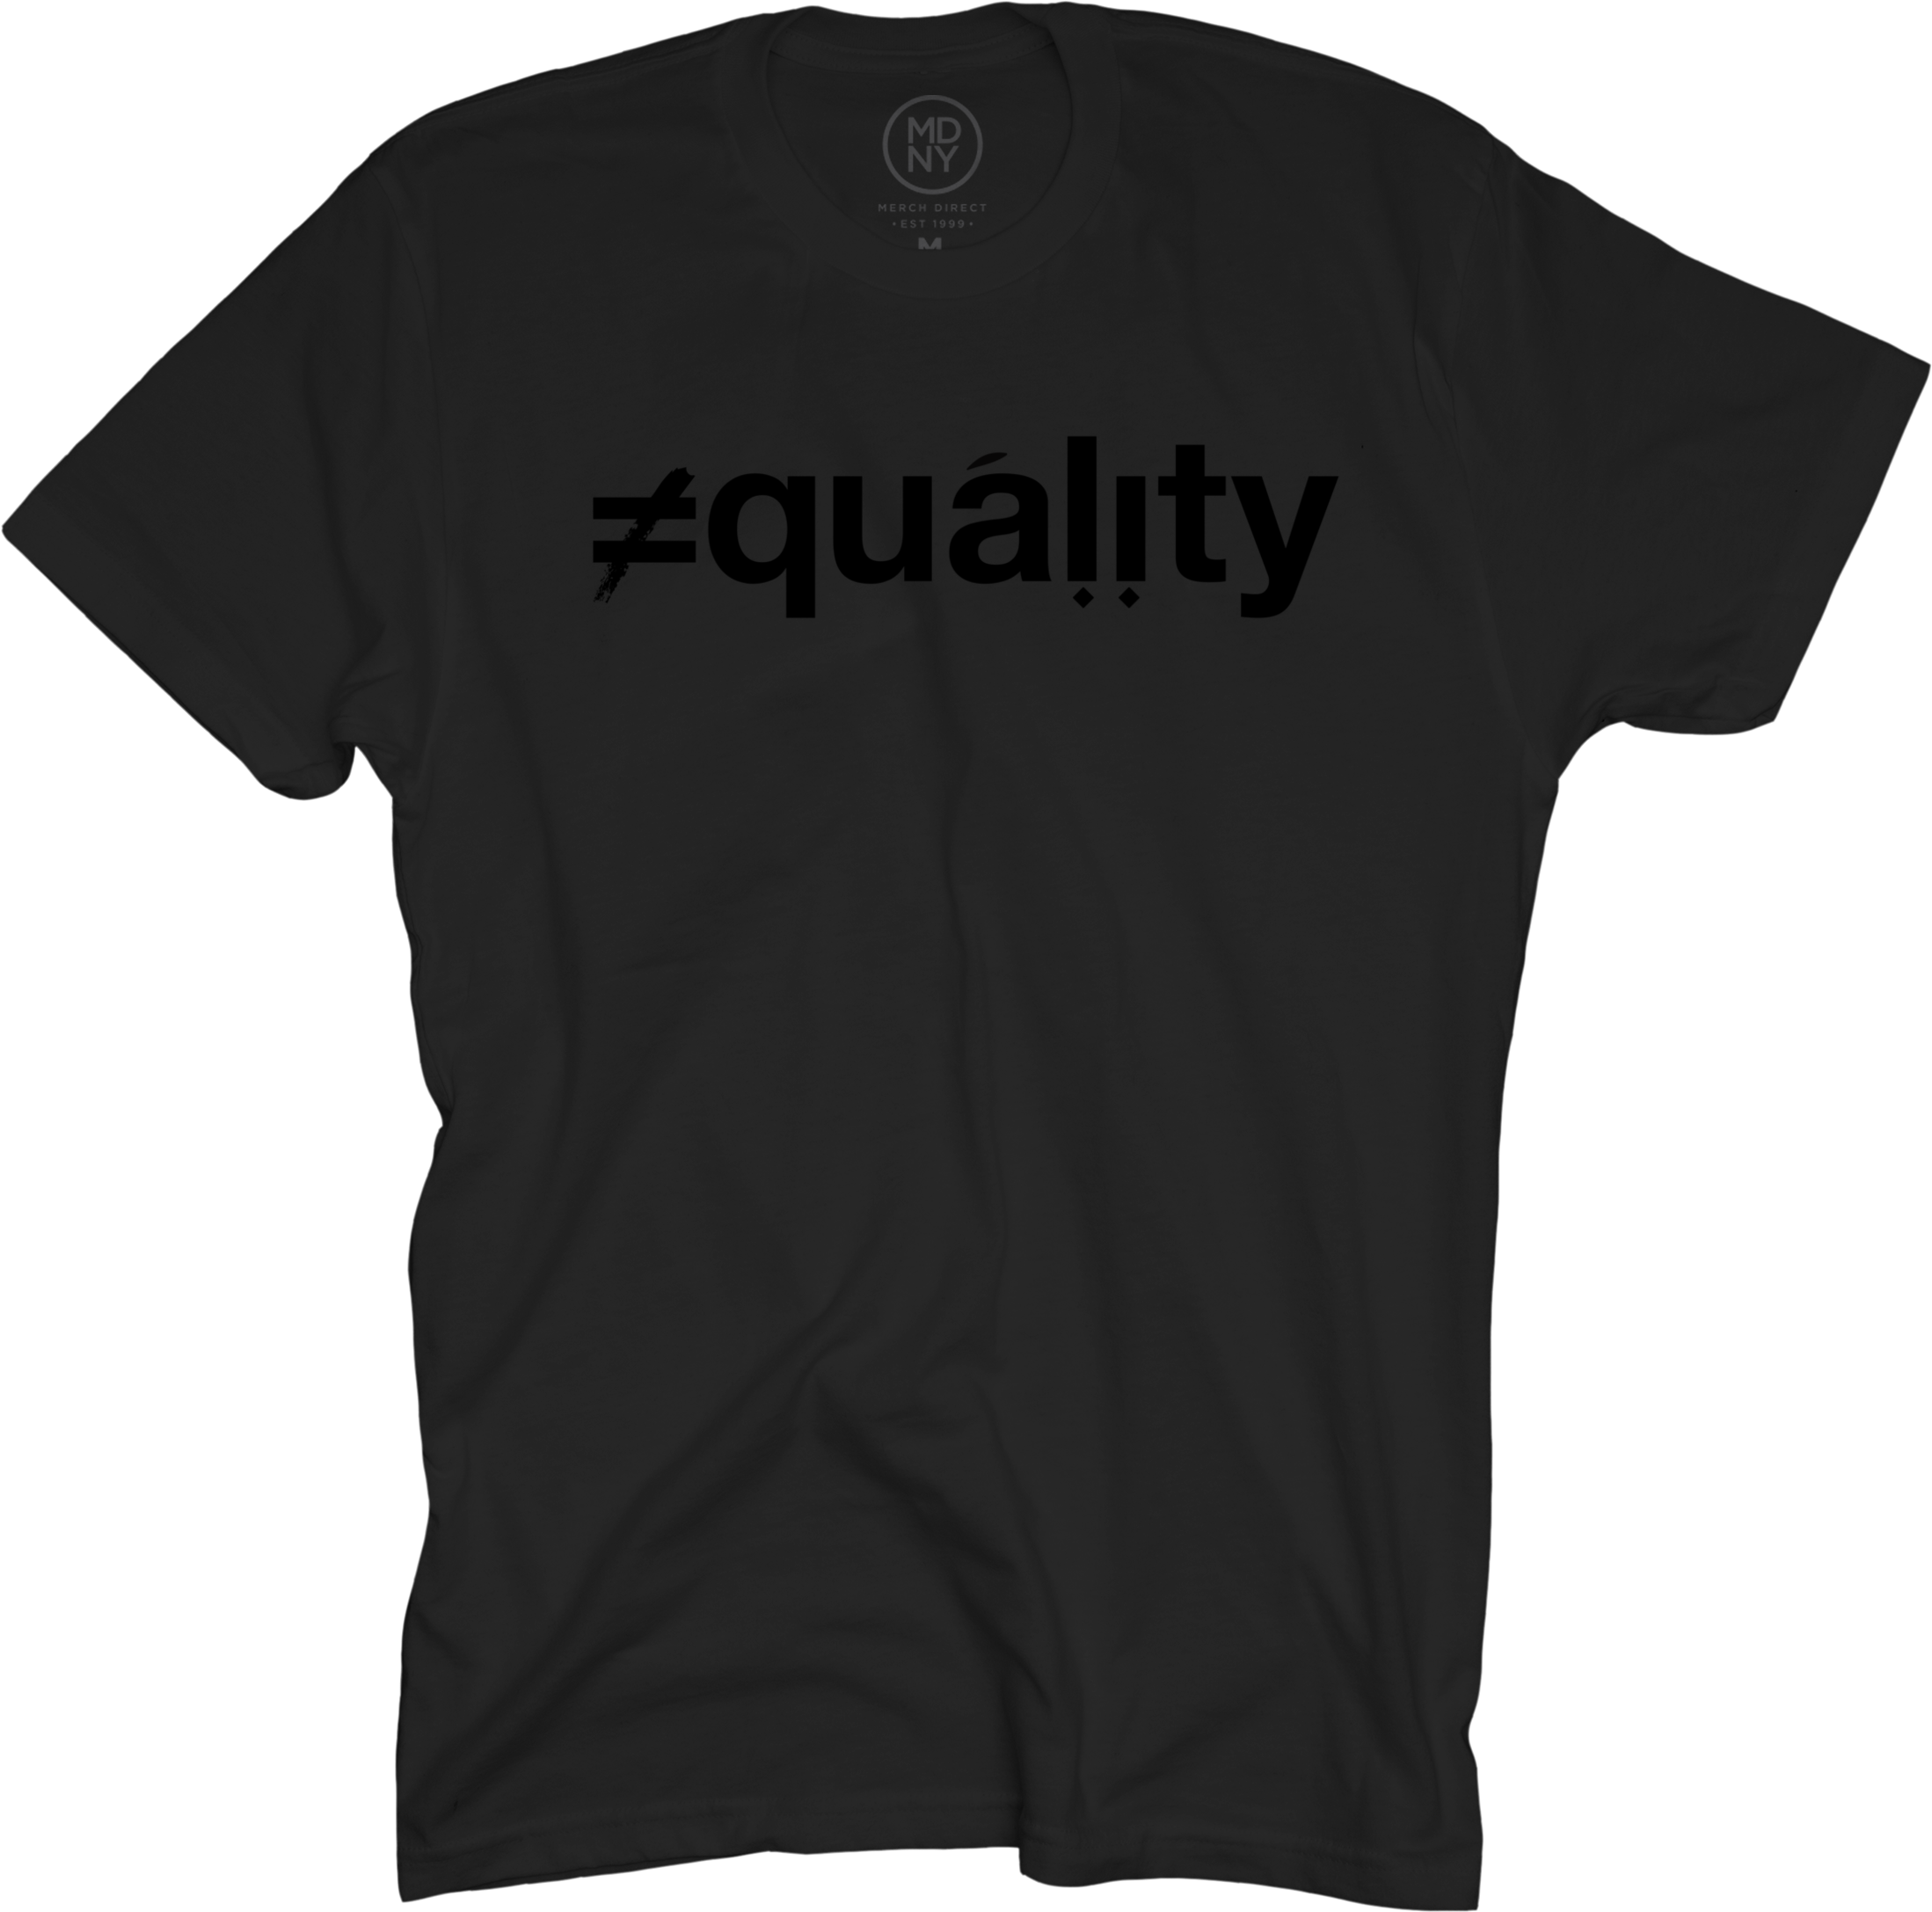 Ali Shaheed - Equality Black on Black T-Shirt